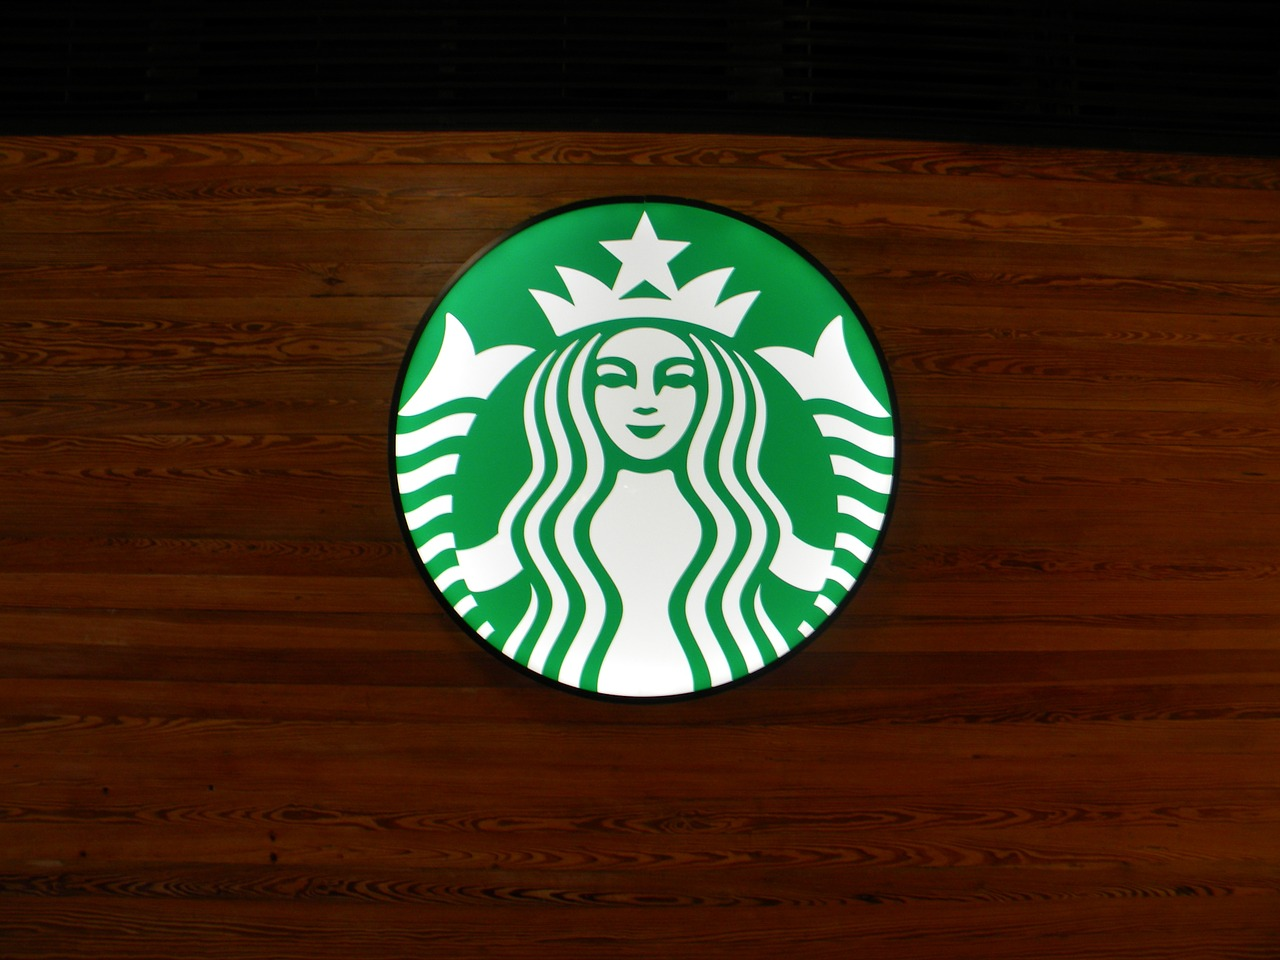 Starbucks is finally coming to Italy